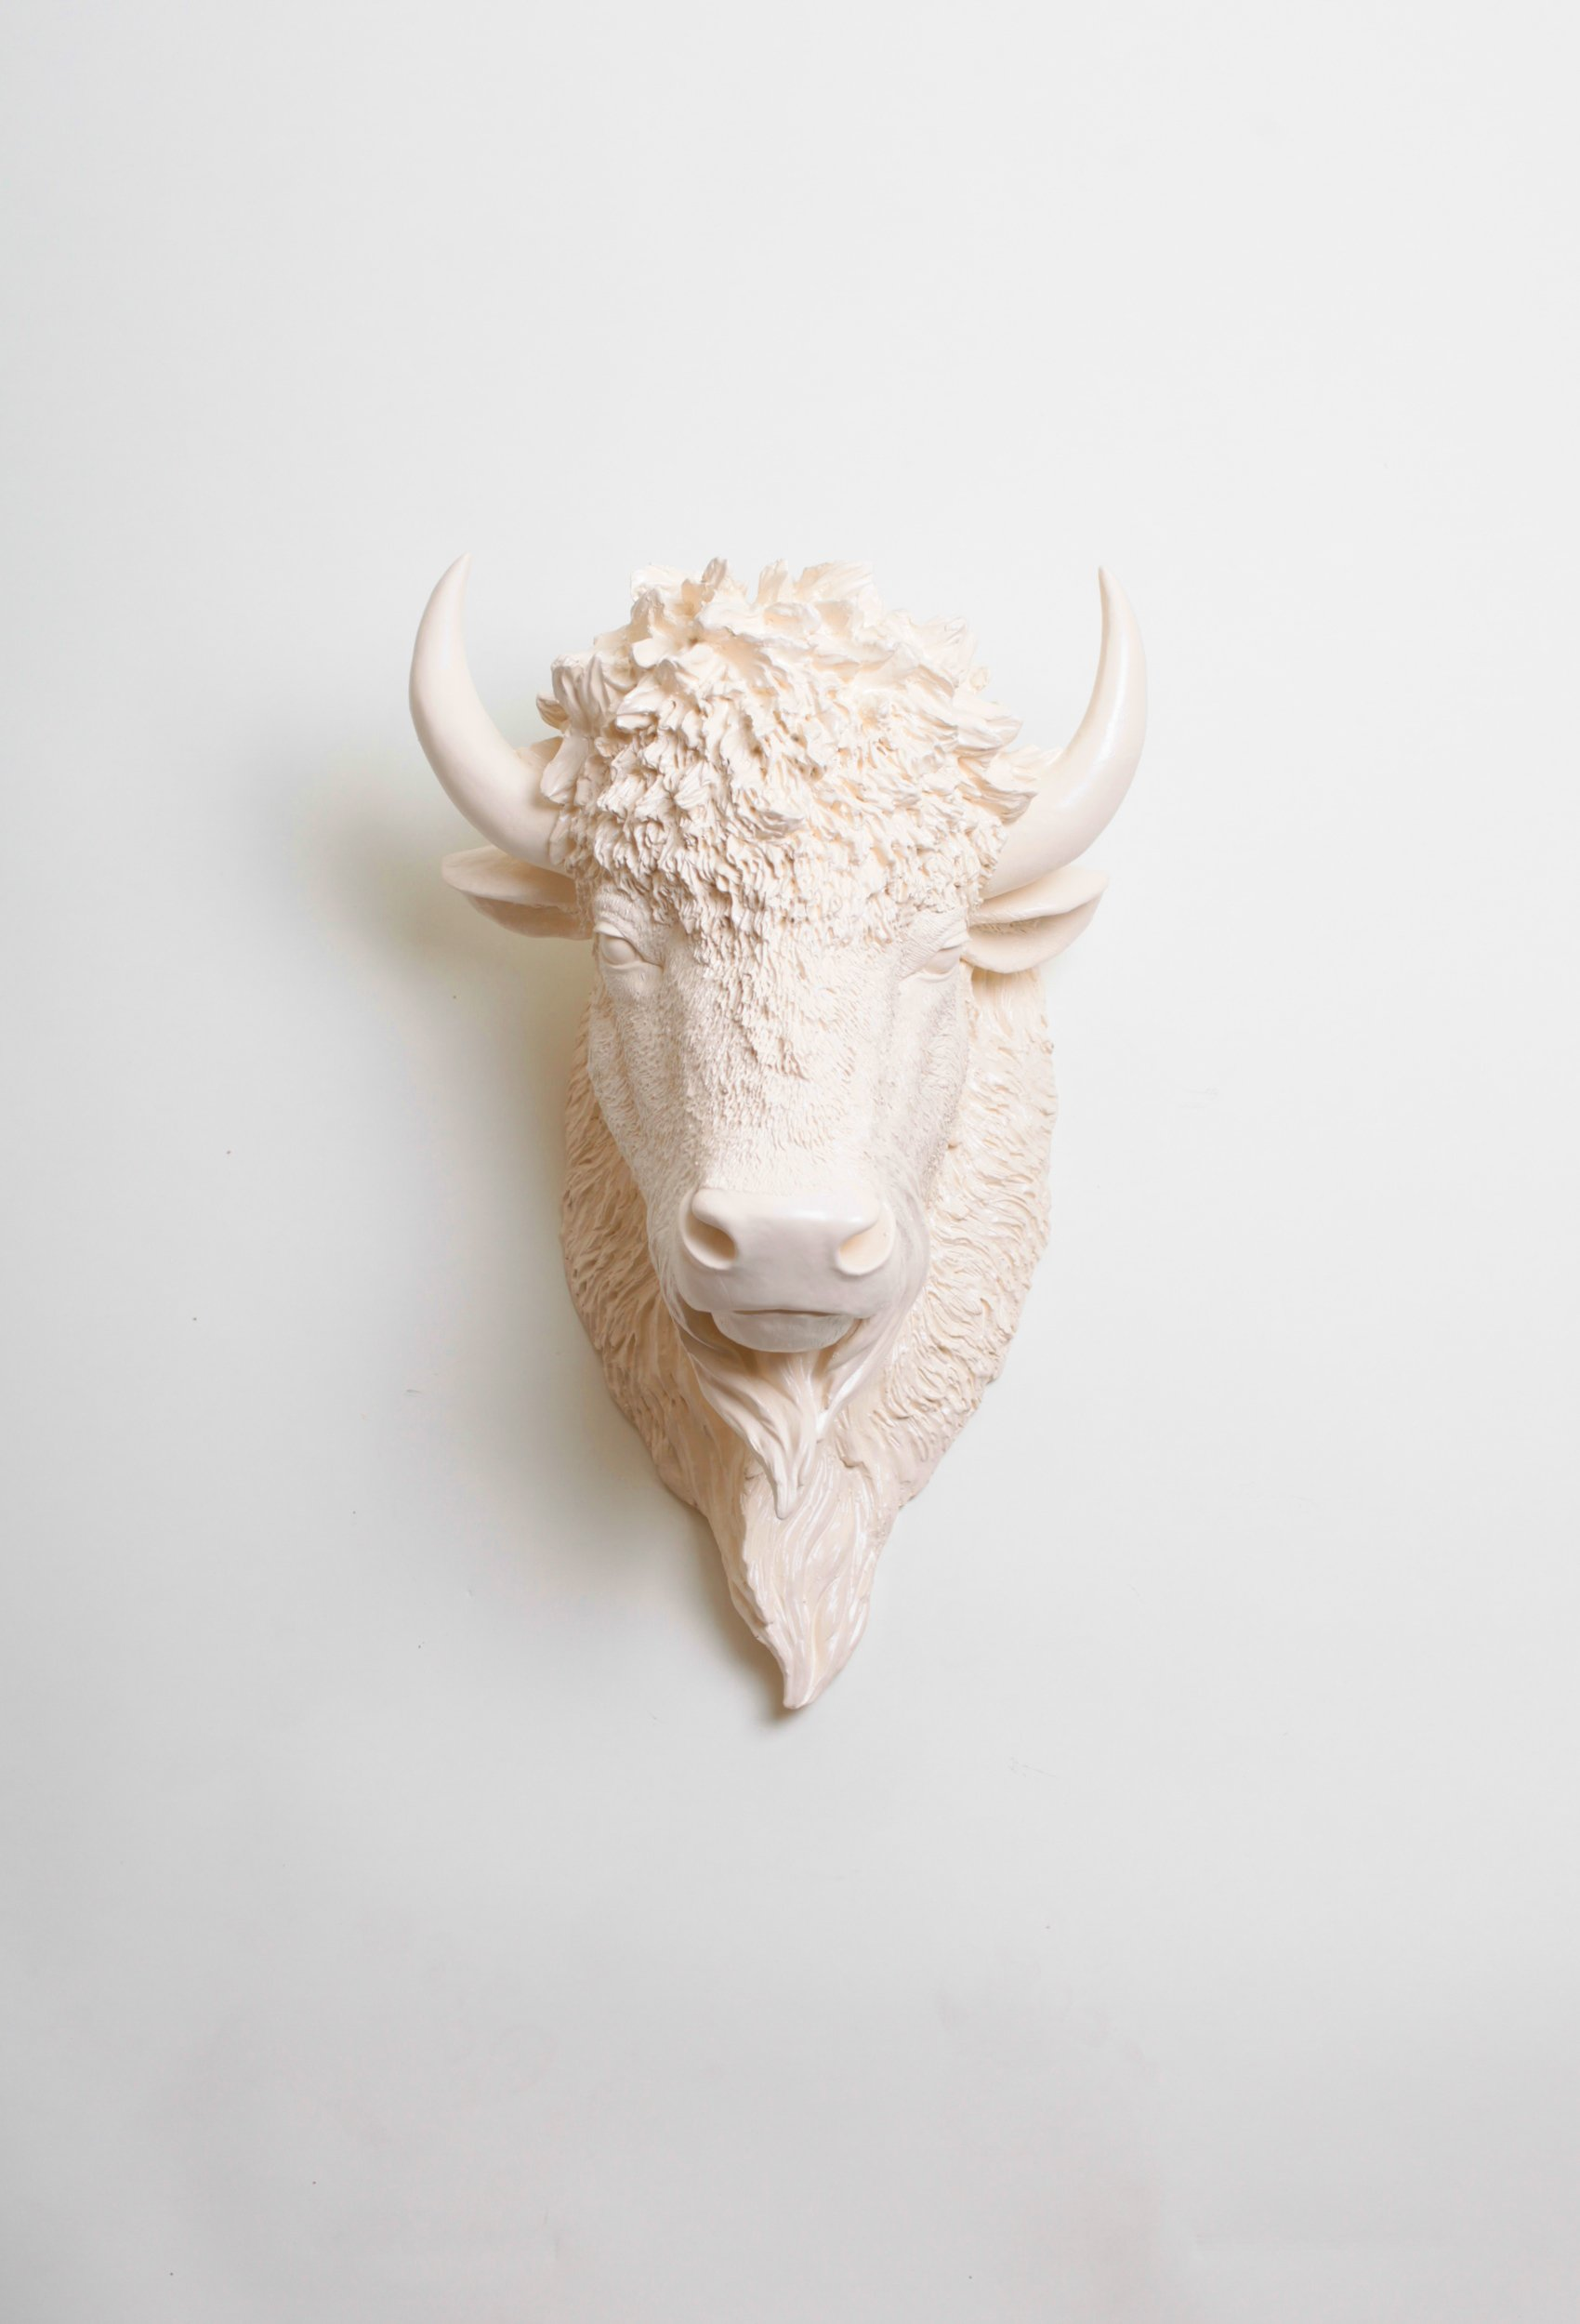 The Aspen | Antique White Resin Bison Head | Antique White Buffalo Head Mount Wall Decor by White Faux Taxidermy | Animal Head Wall Hanging Sculpture | Decorative Buffalo Head